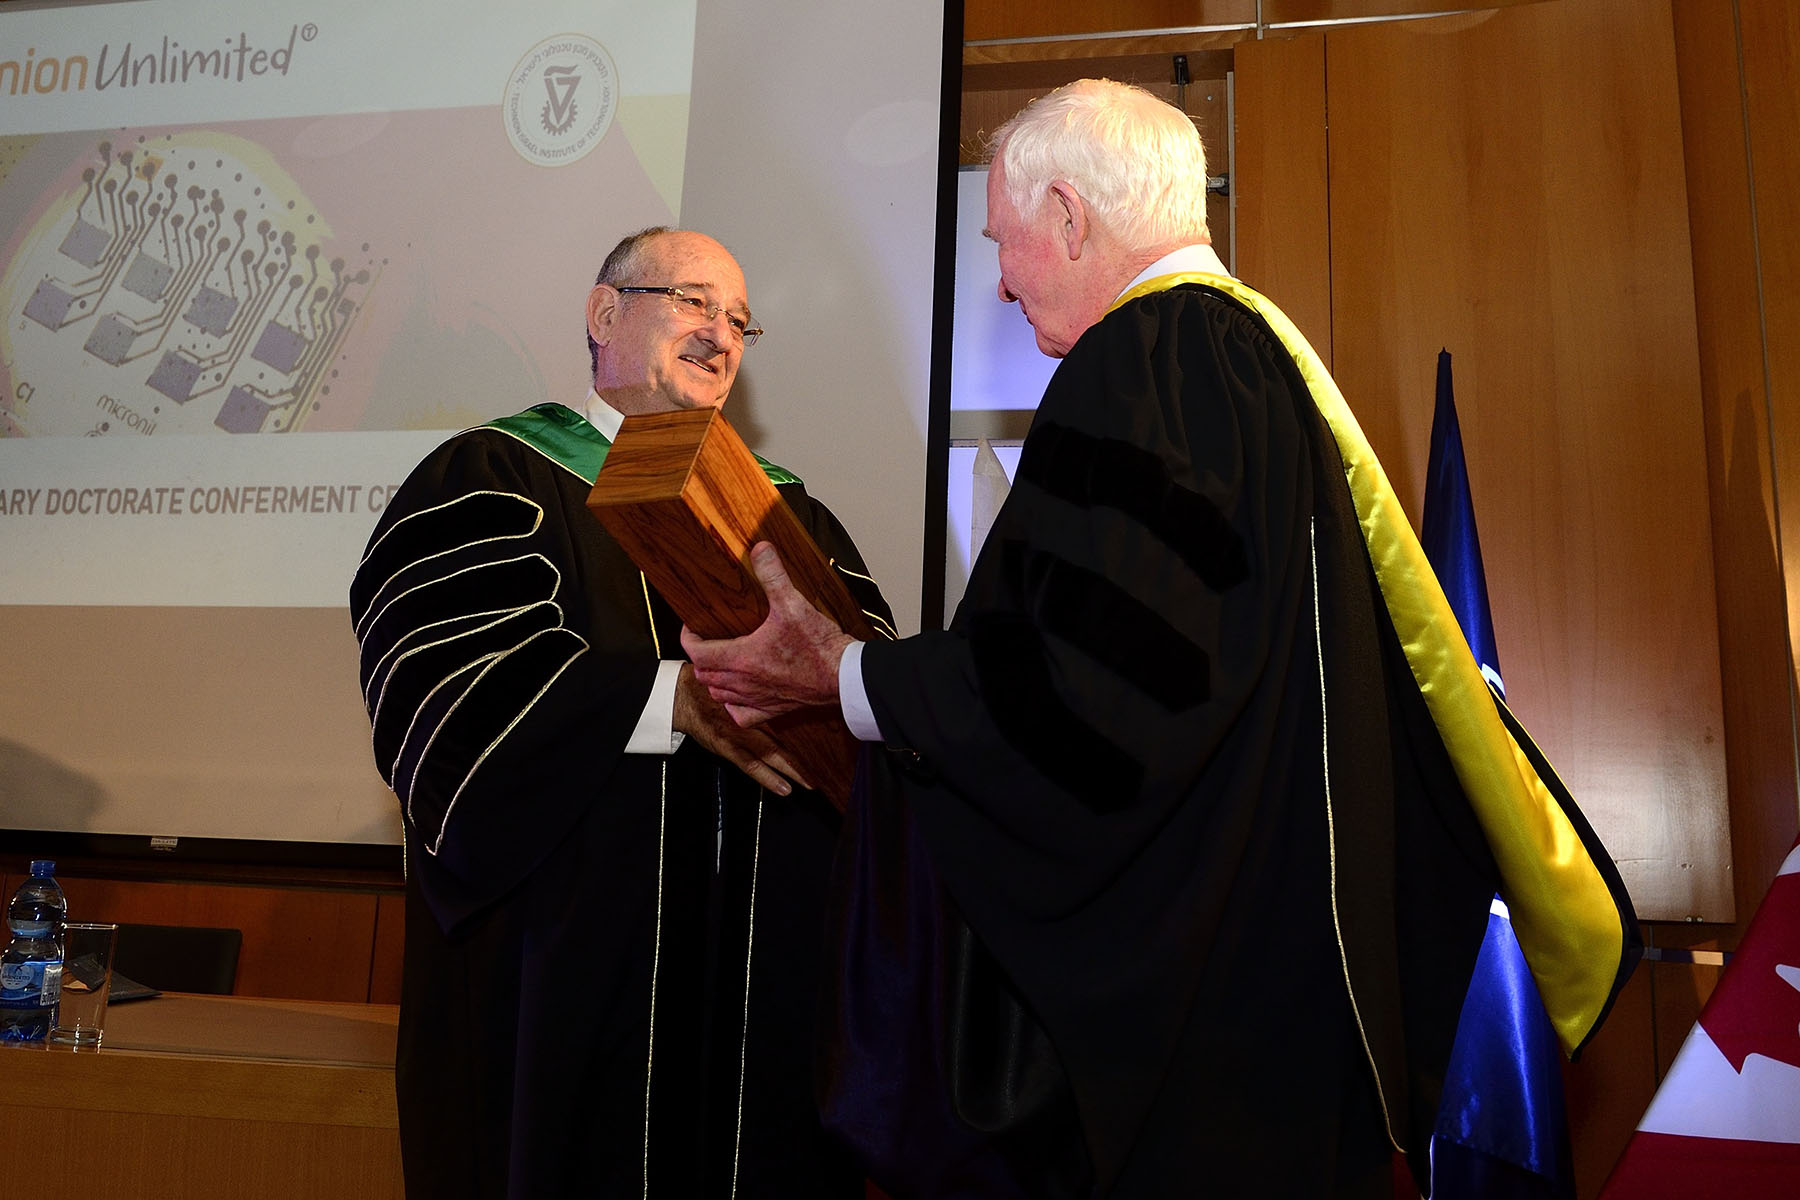 The Governor General received an honorary doctorate from The Technion–Israel Institute of Technology for his contributions to the Canada-Israel innovation relationship.